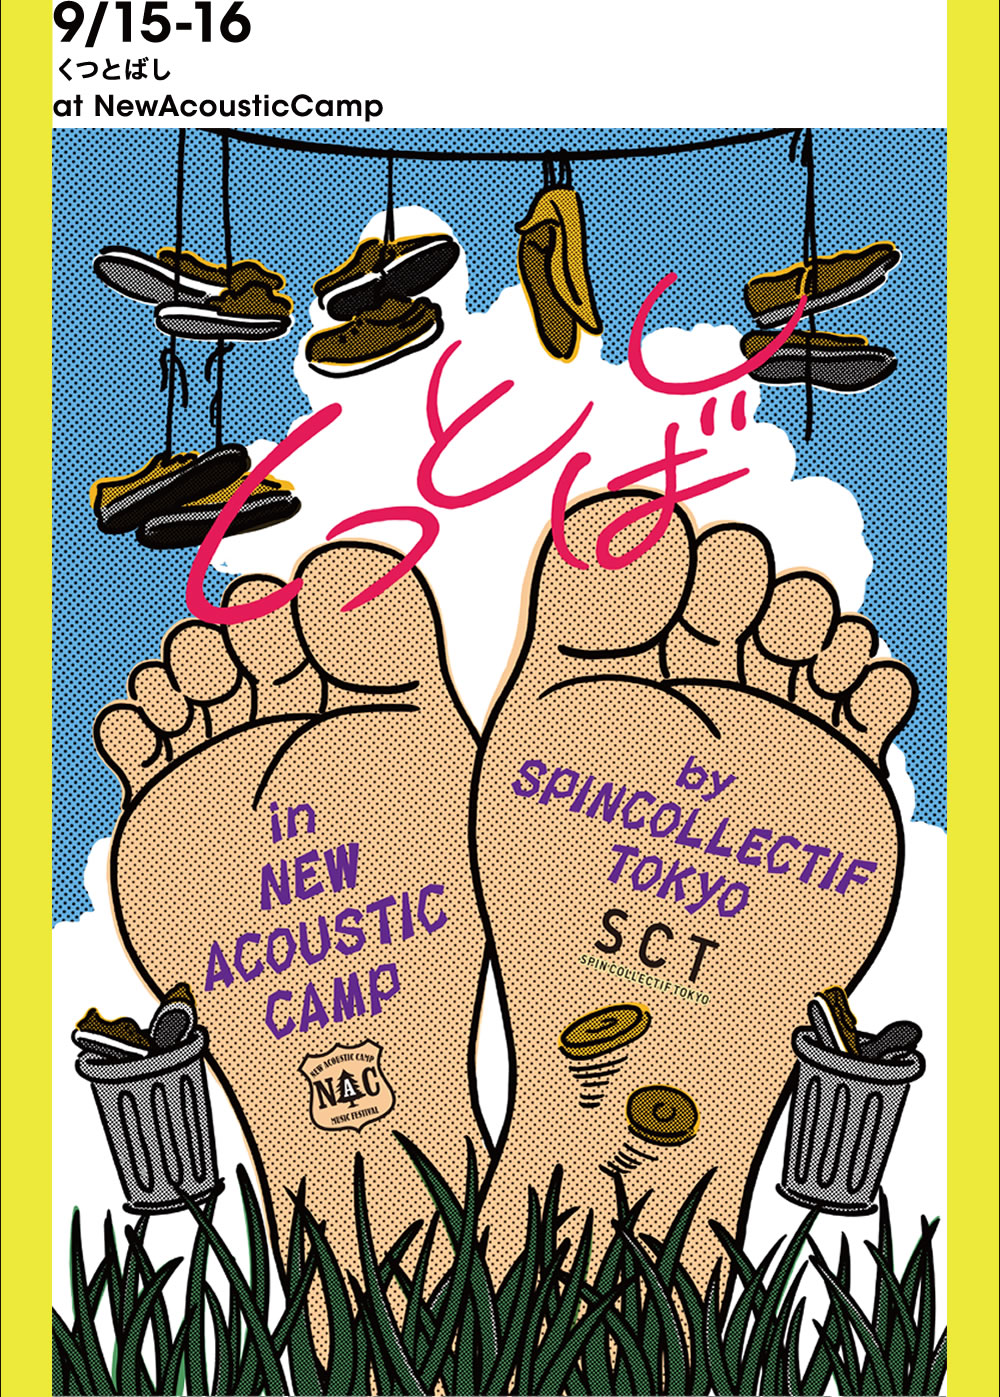 2018/9/15-16 くつとばし at NewAcousticCamp